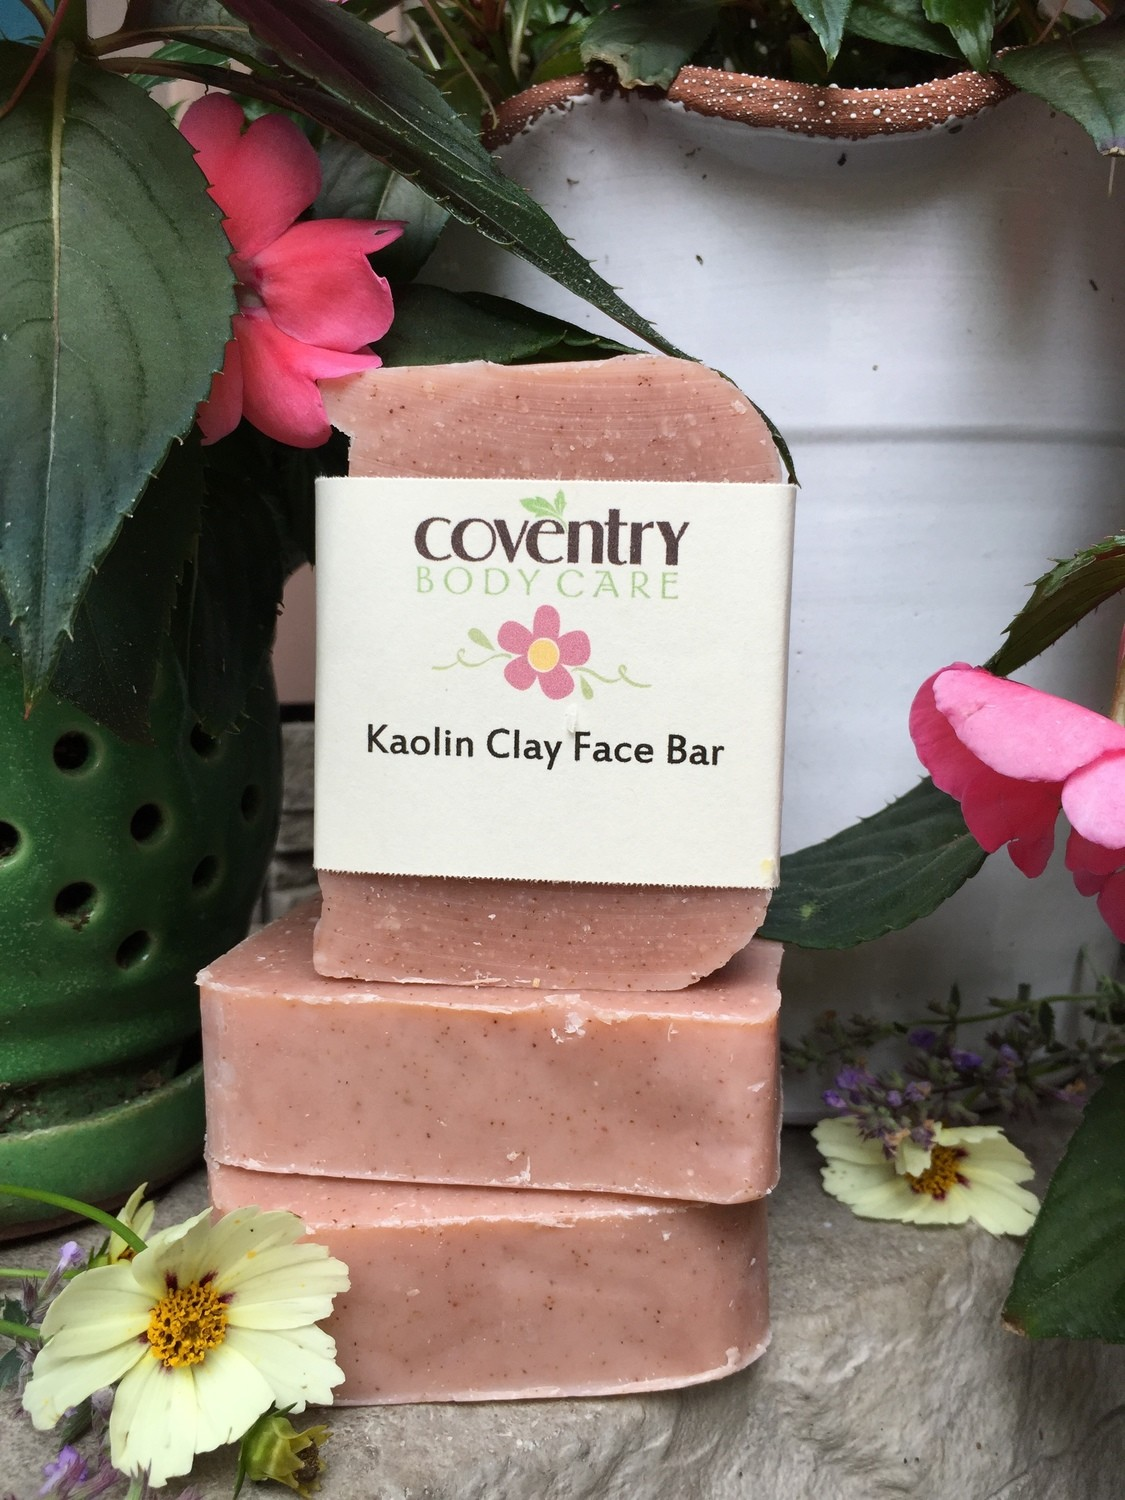 Kaolin Clay Face Bar